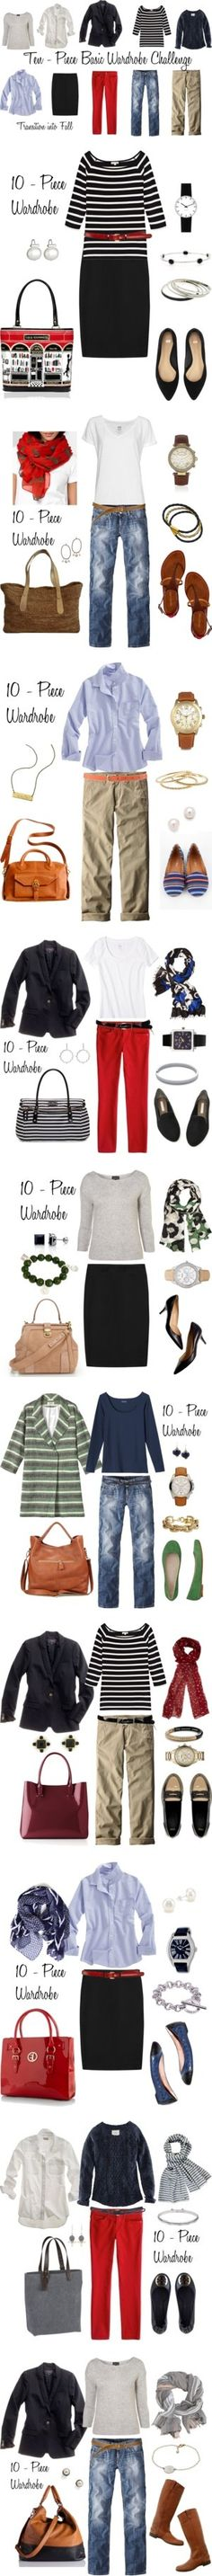 """""""Looks from the 10 - Piece Wardrobe Challenge"""" by bluehydrangea ❤ liked on Polyvore 